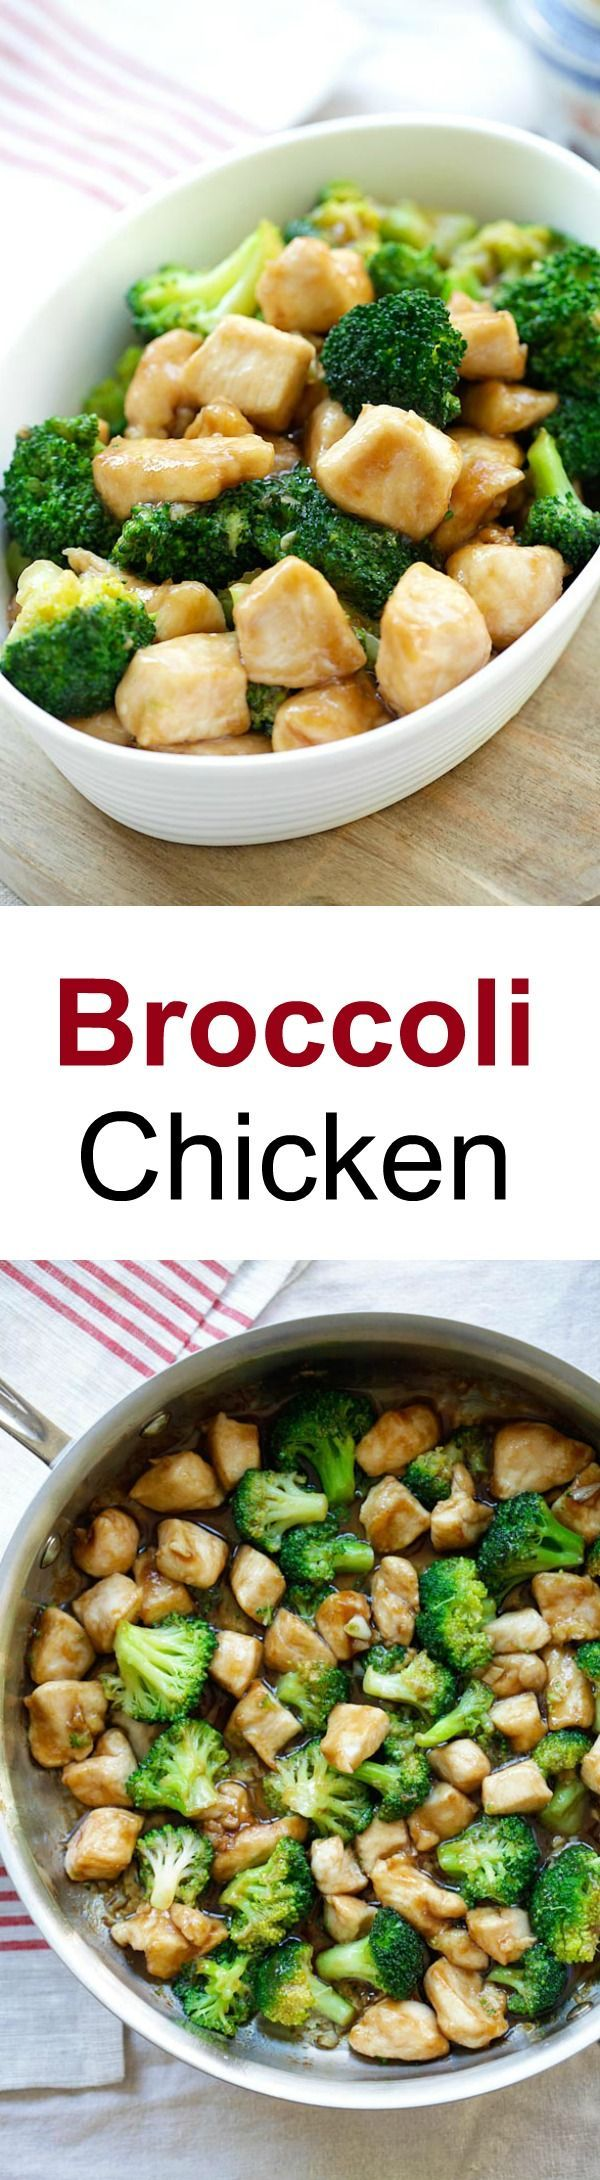 Broccoli Chicken – Learn how to make healthy homemade chicken stir-fry with broccoli in brown sauce. Best Chinese takeout recipe